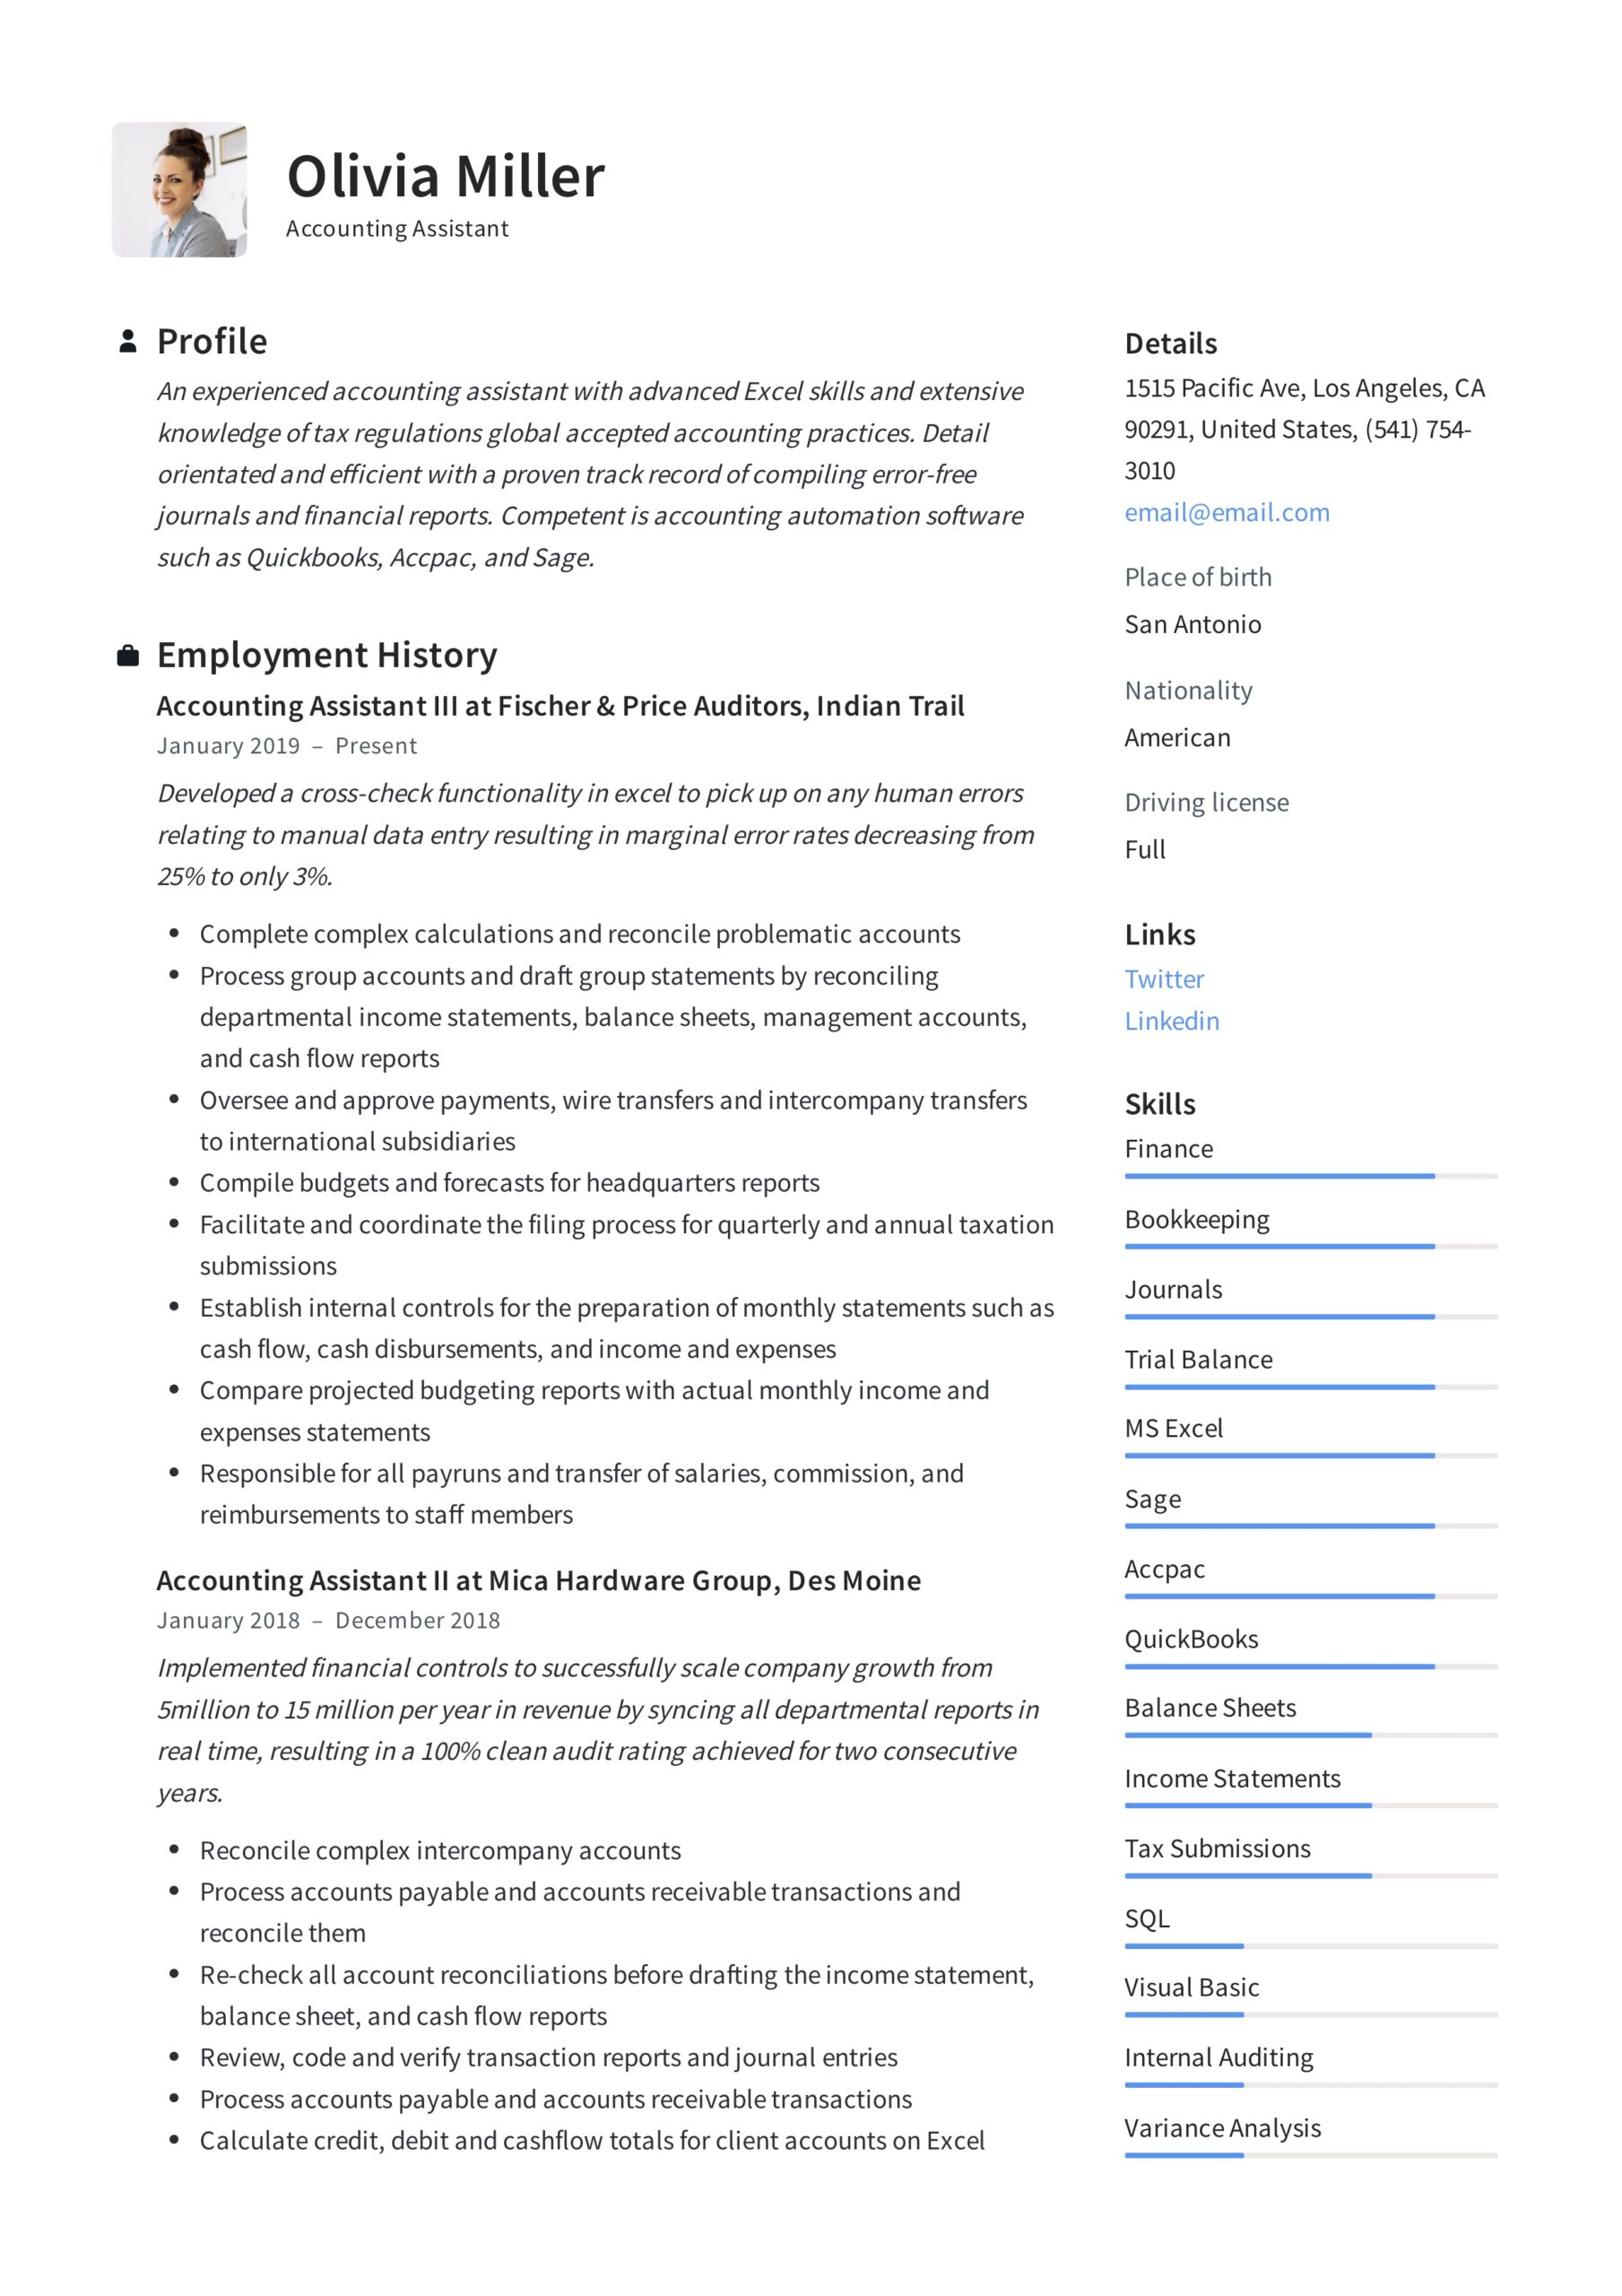 accounting assistant resume writing guide examples pdf sample governance aws devops Resume Accounting Assistant Resume Sample